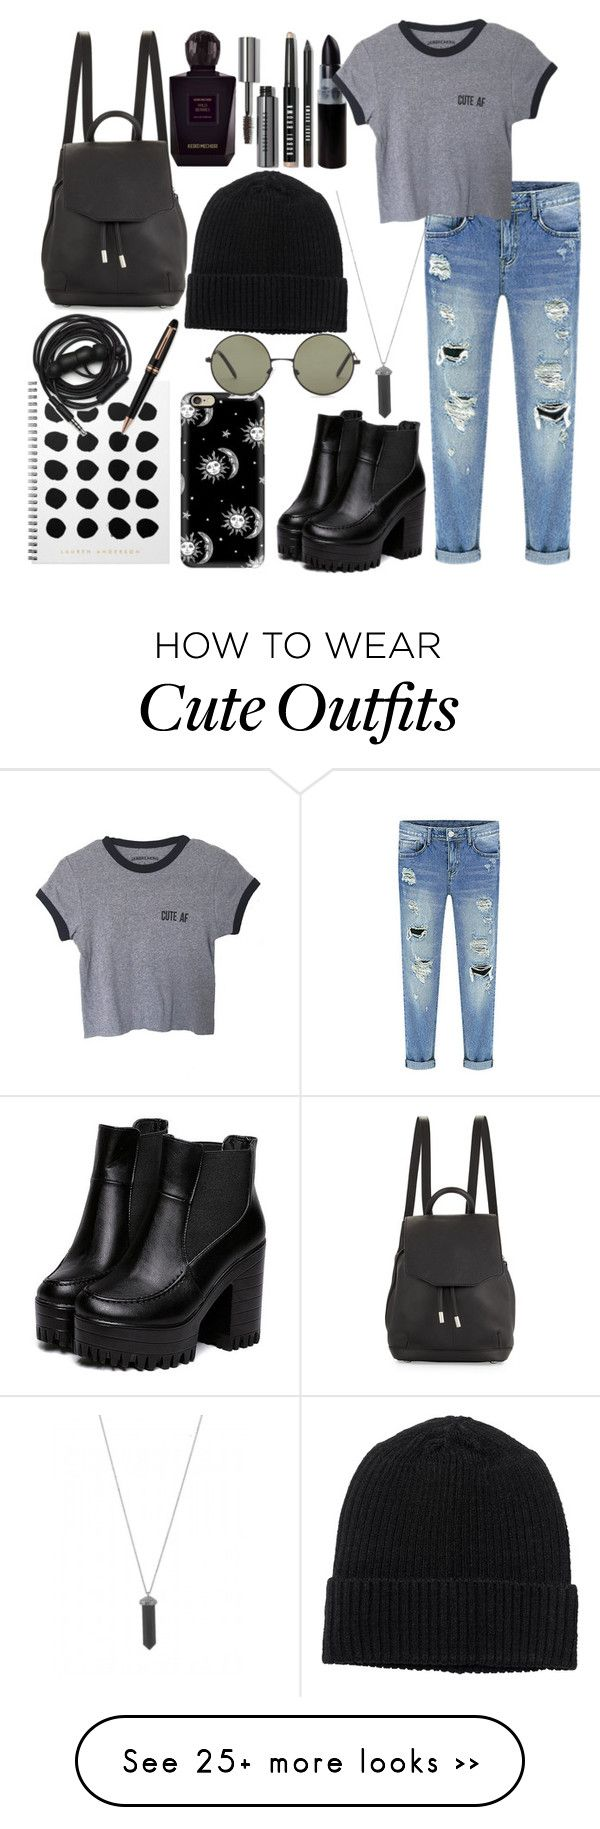 """Grunge Outfit No. 1"" by night-approaches on Polyvore featuring Karen Kane, Monki, rag & bone, Keiko Mecheri, Urbanears, Bobbi Brown Cosmetics, Montblanc, Casetify and Forever 21"